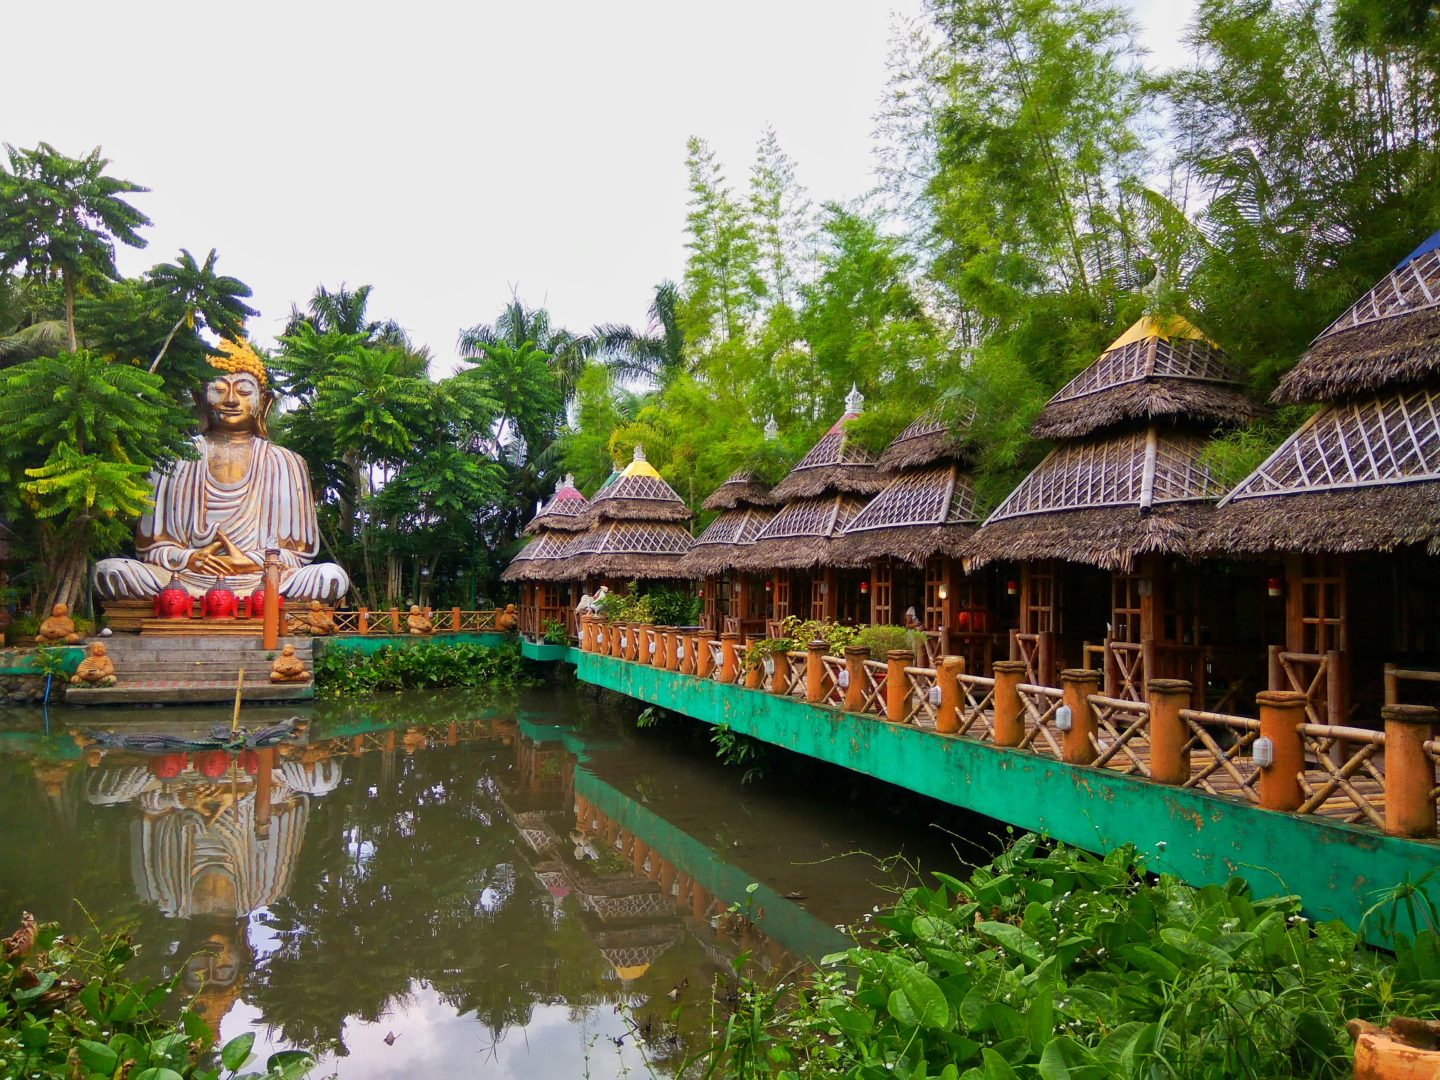 Thailand Feels In Laguna Isdaan Floating Resto Fun Park 2 Hours Away From Manila The Jerny